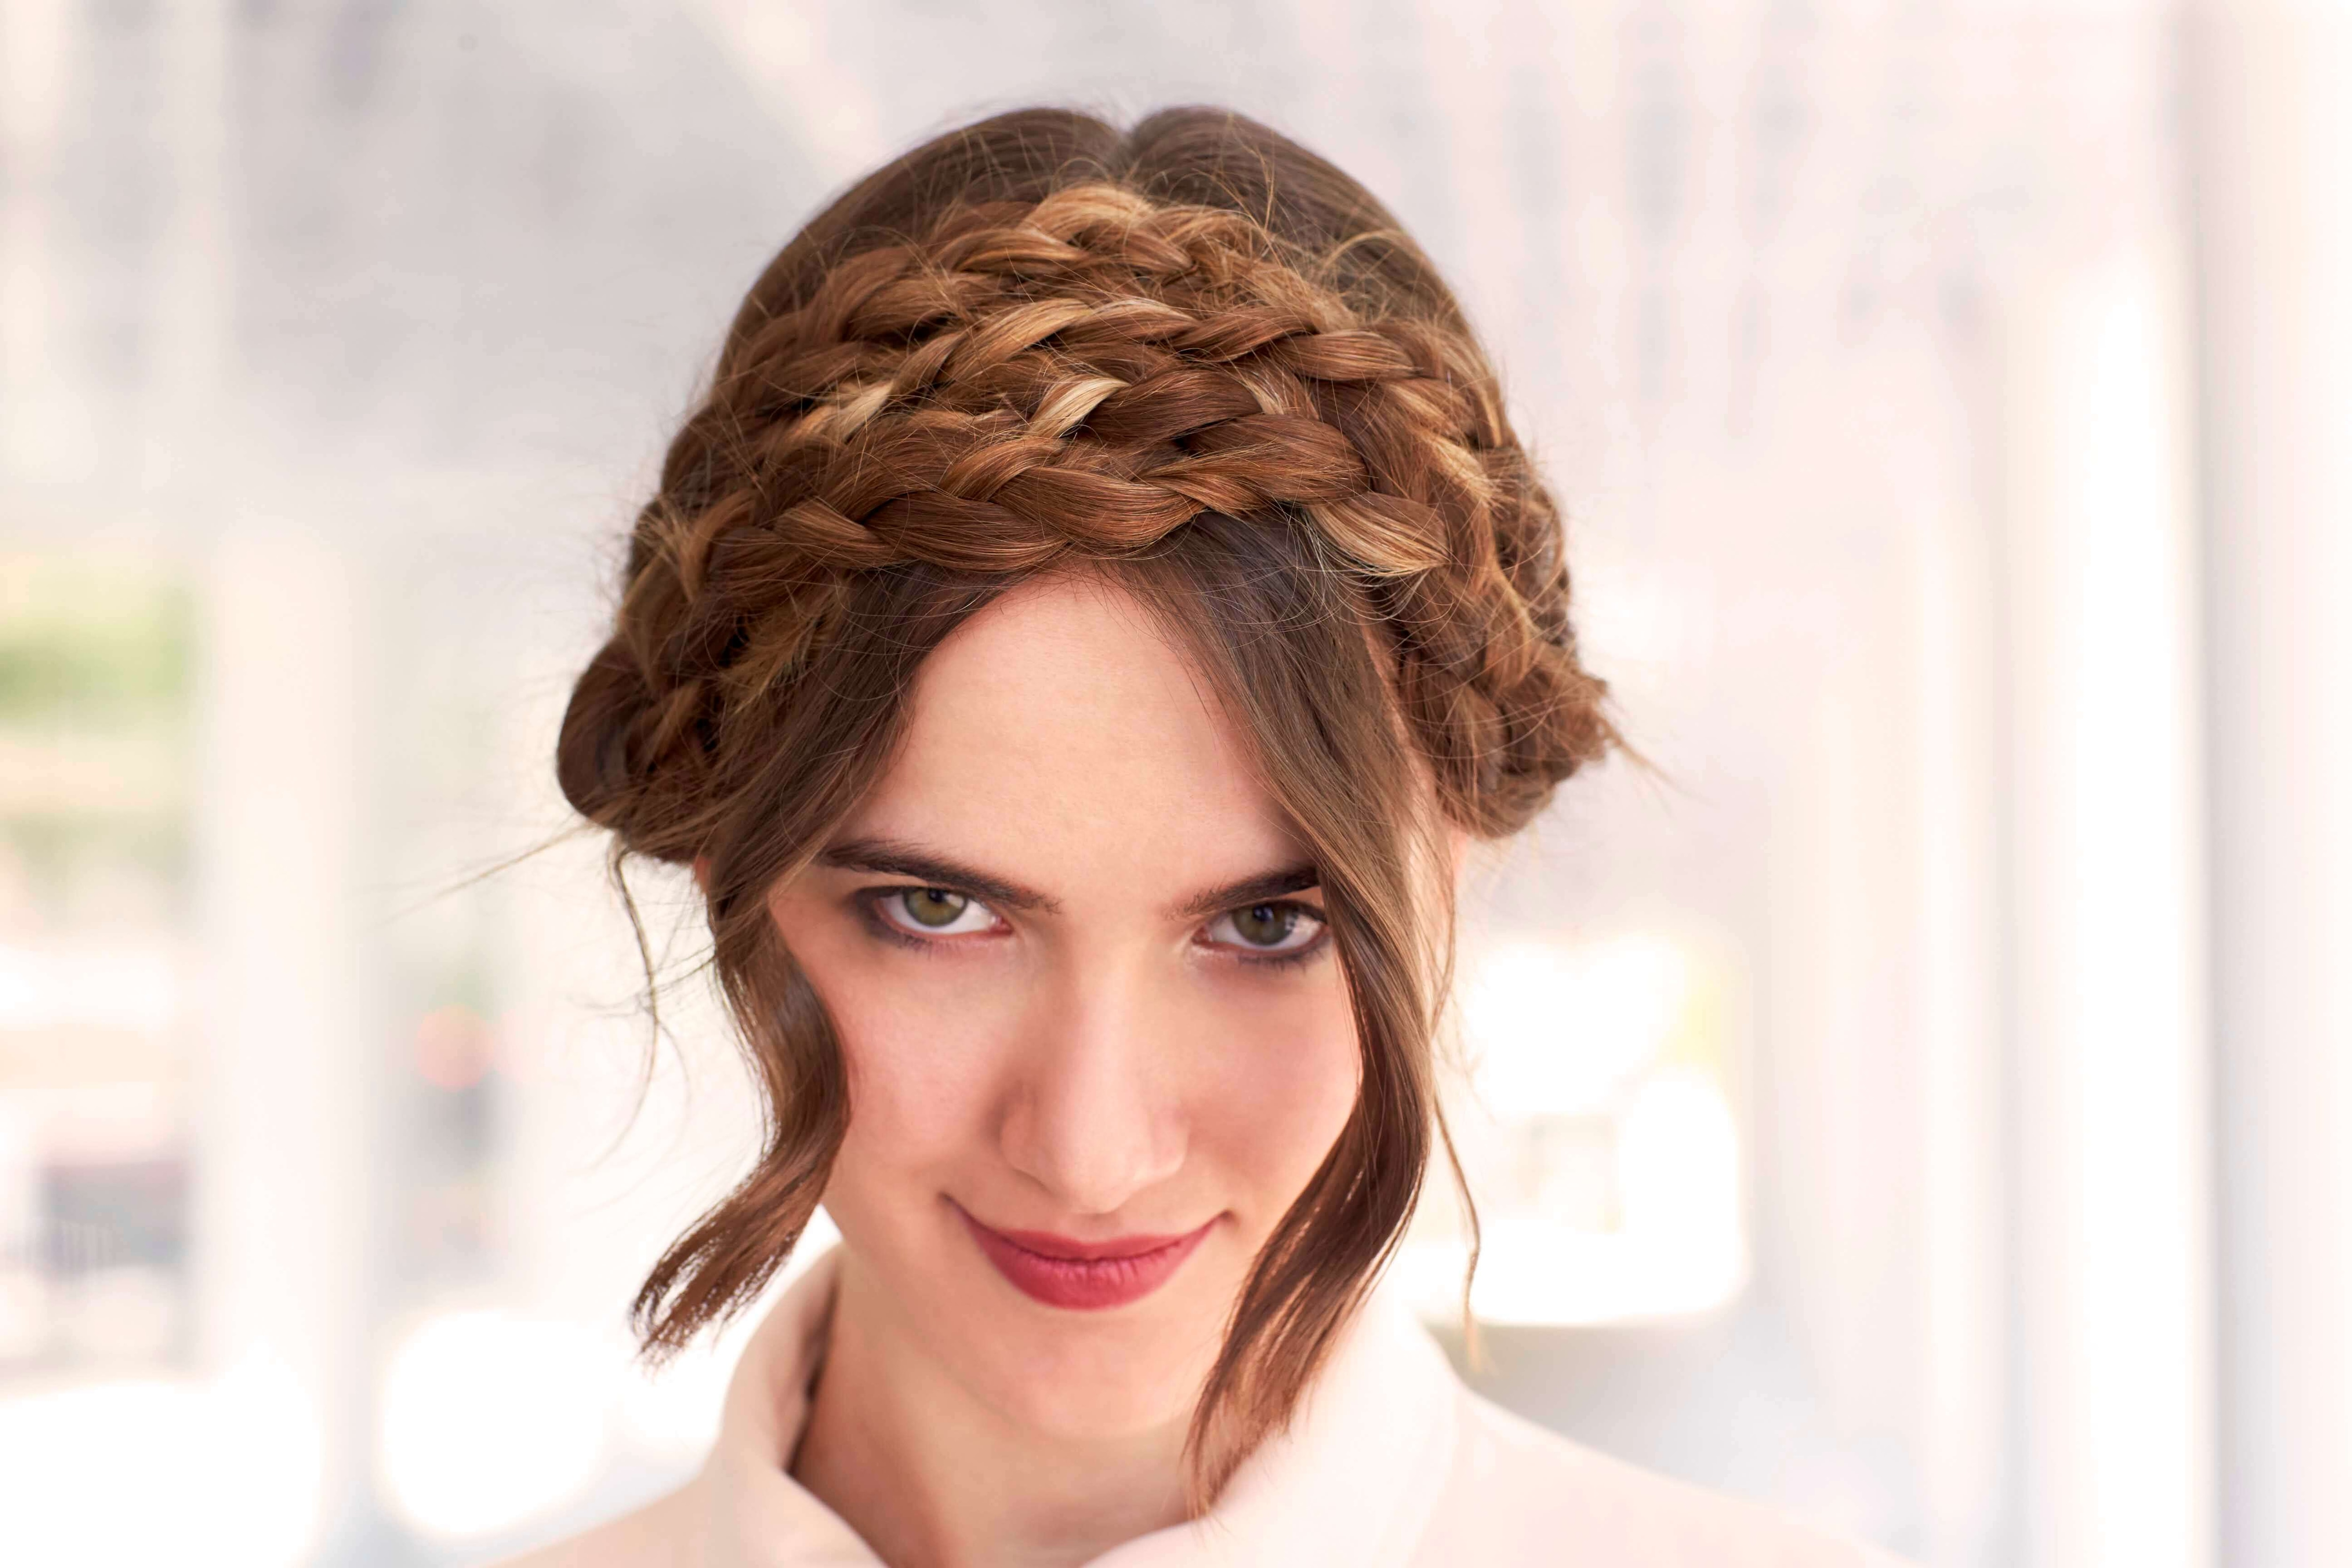 Hairstyles for thick hair: 10 braided hairstyles your mane will love